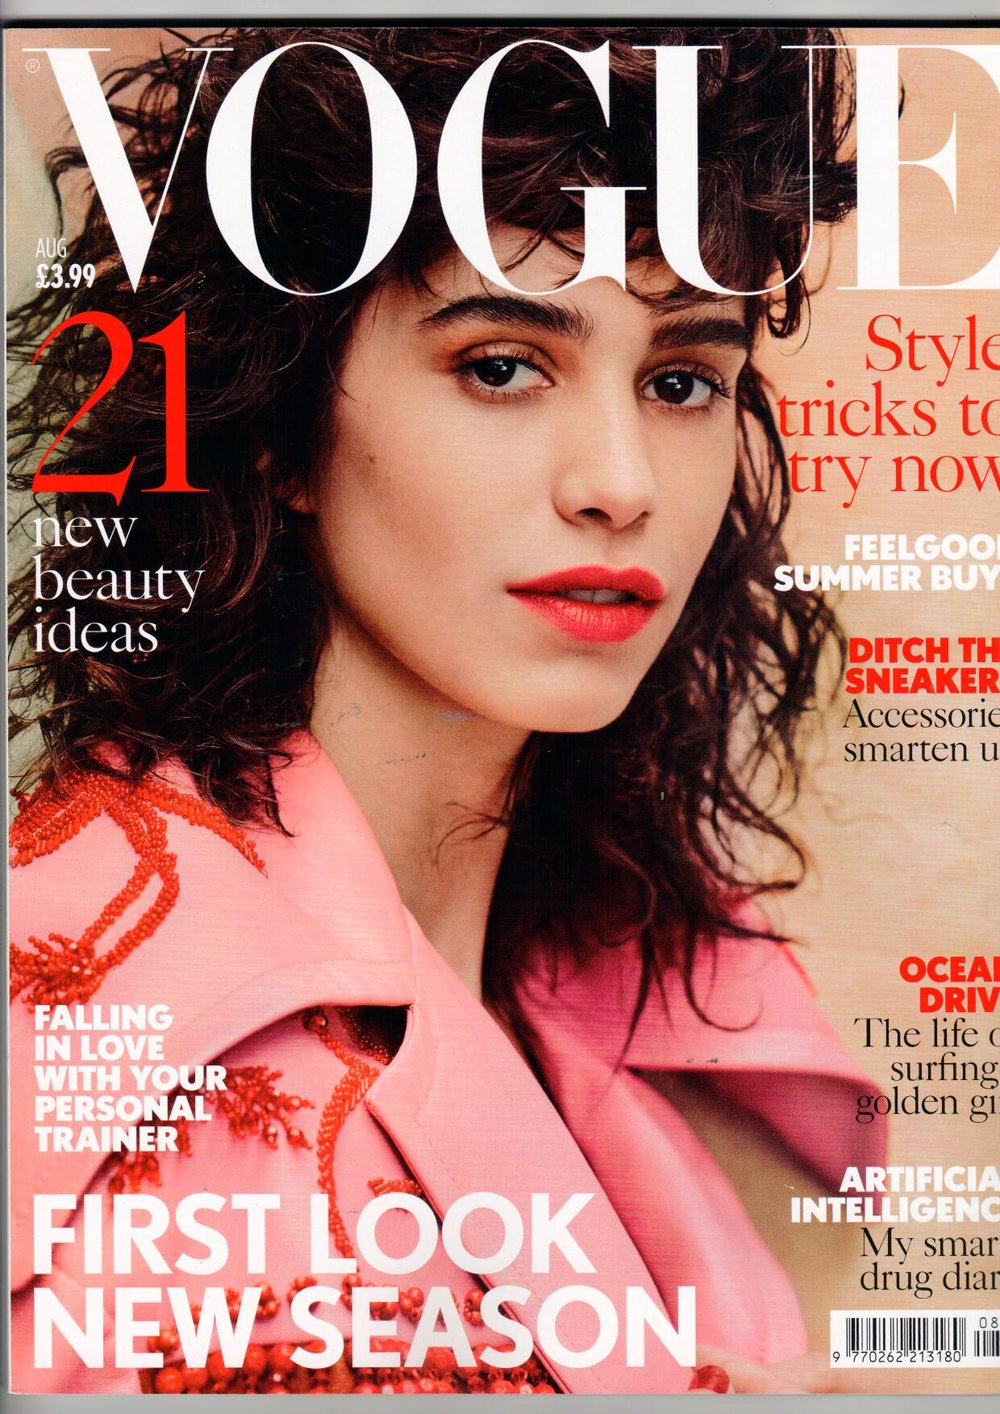 Nadya Shah in Vogue, August Issue Cover.jpg